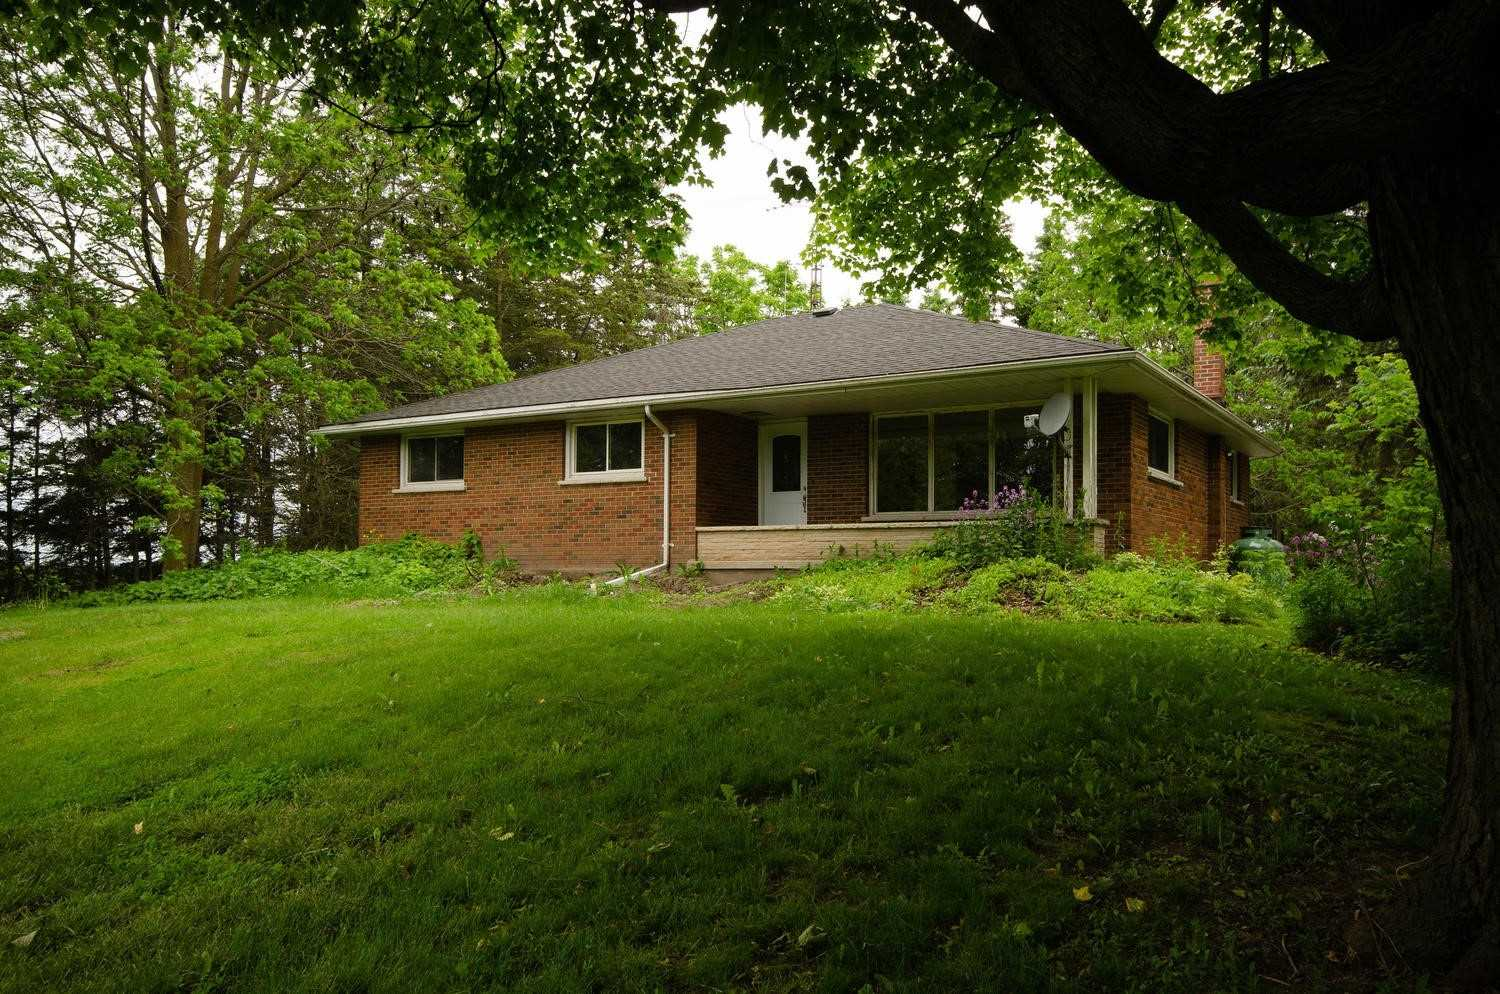 pictures of house for sale MLS: X4696894 located at 7296 Dale Rd, Hamilton Township K9A4J7